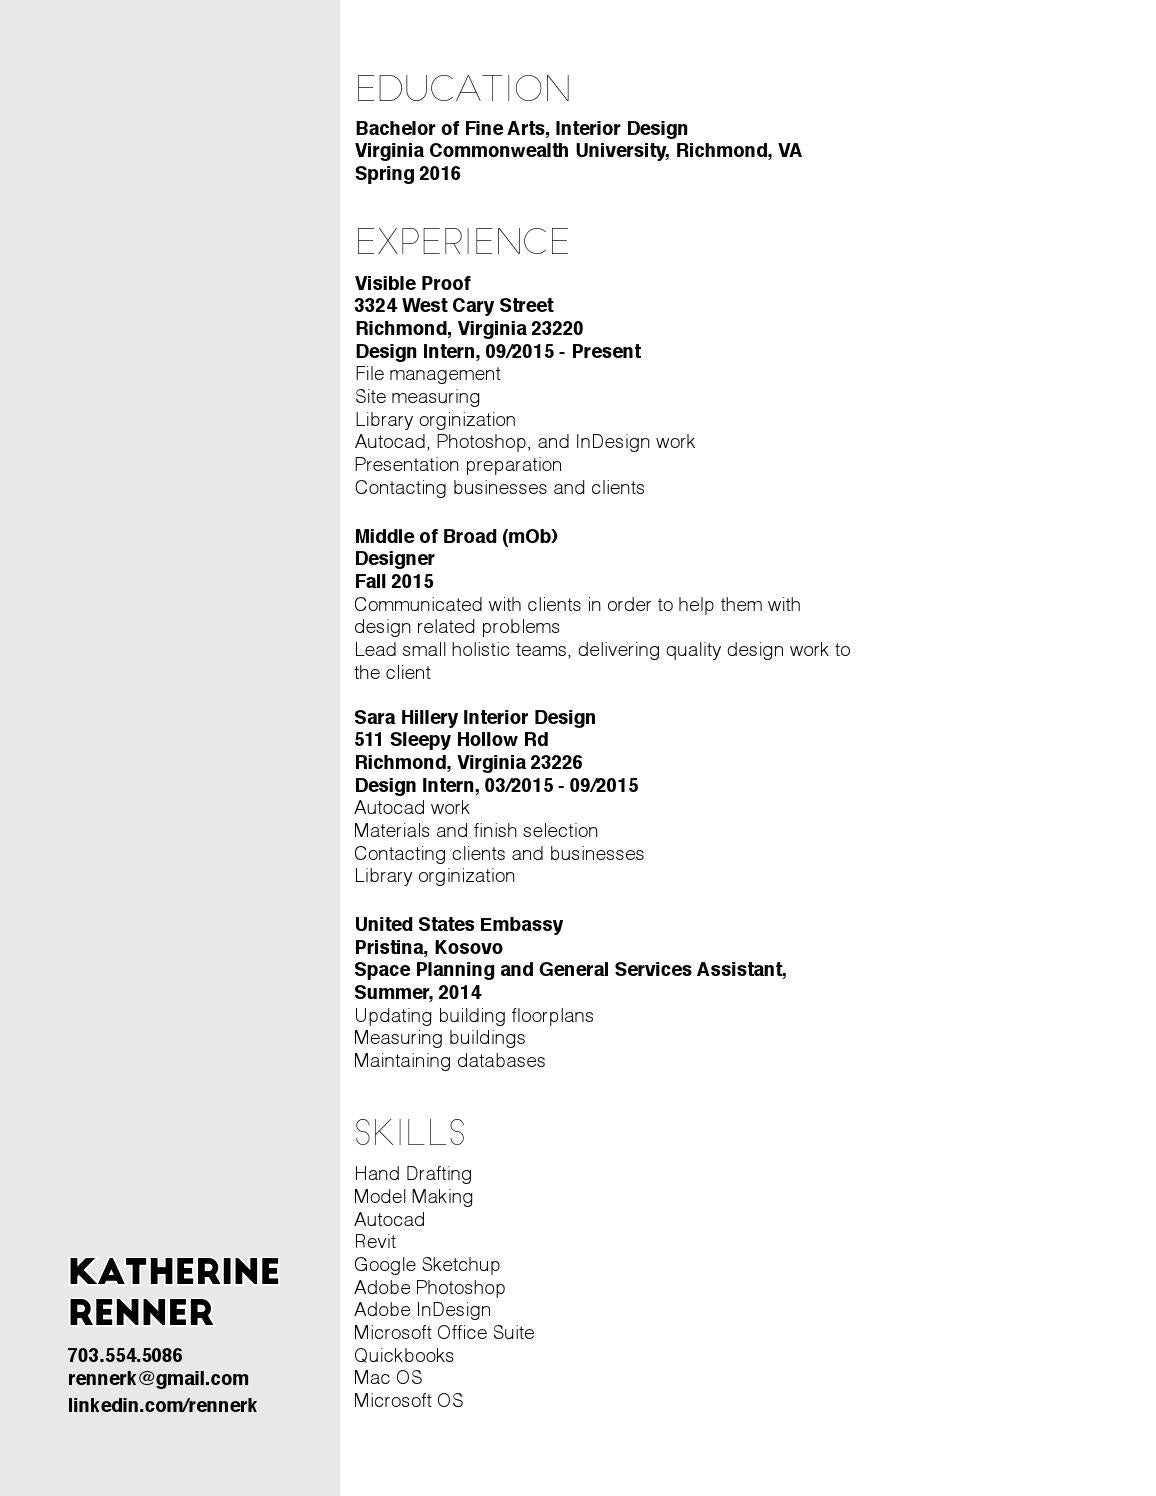 Resume By Kate Renner